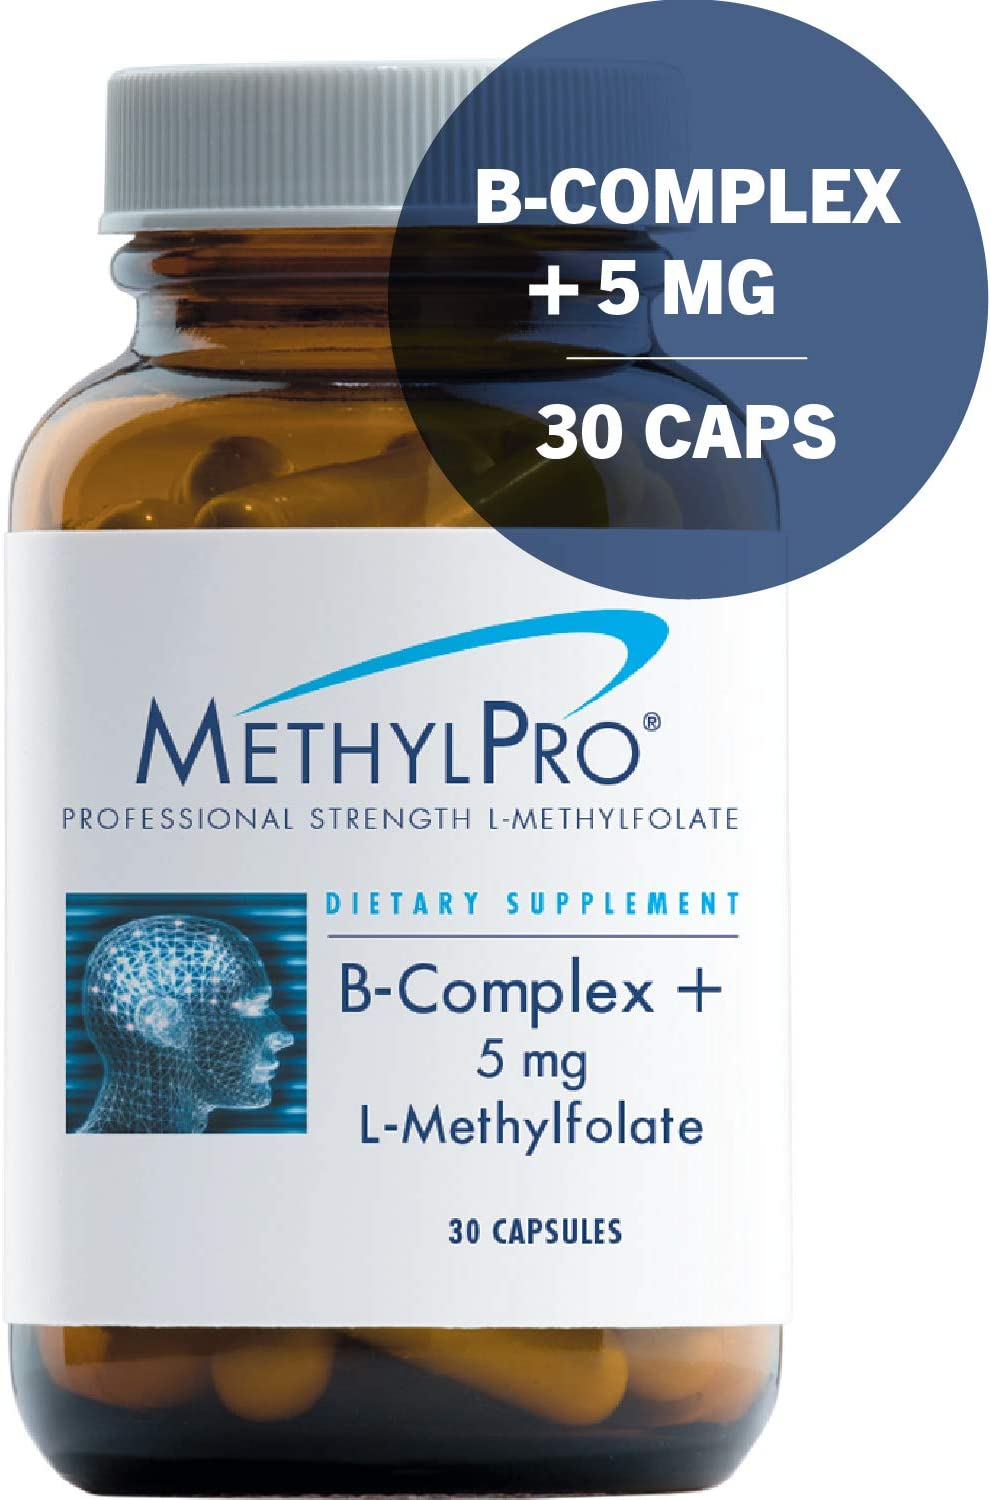 MethylPro B-Complex 5mg L-Methylfolate 30 Capsules – Professional Strength Active Folate for Energy Mood Support with Methyl B12 B6 as P-5-P, Non-GMO Gluten-Free